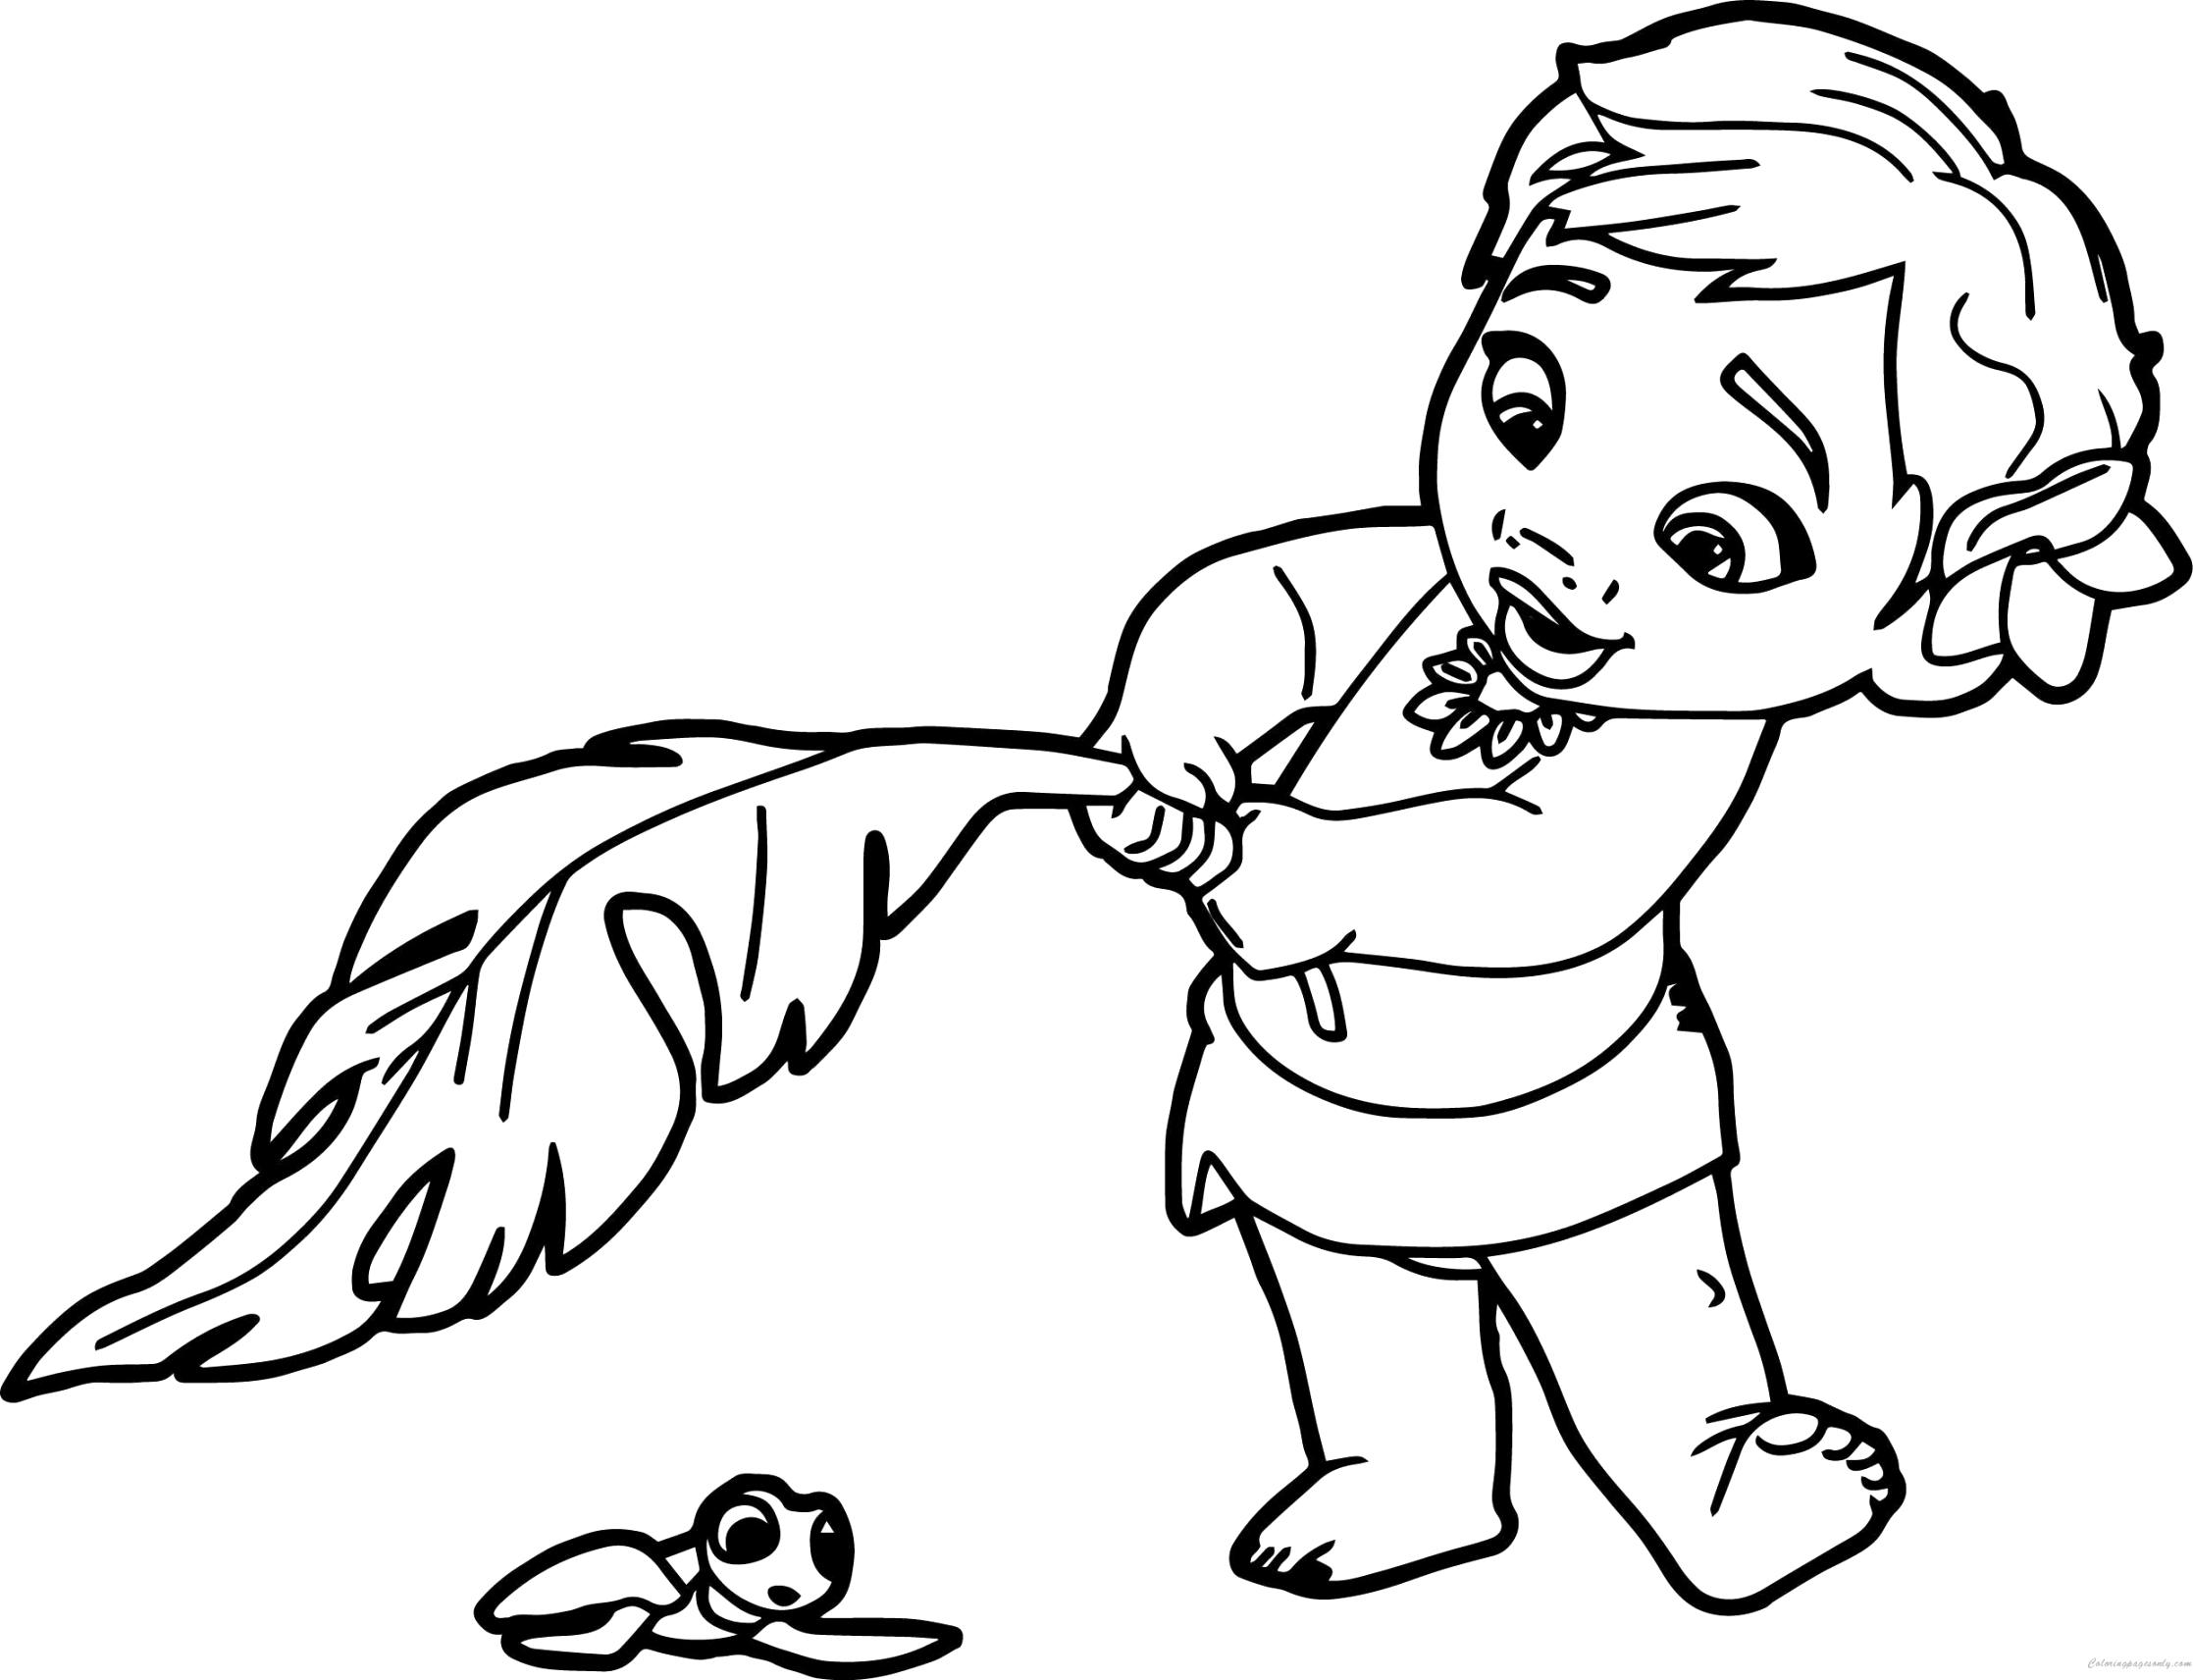 Discover Free moana coloring pages for kids of all ages